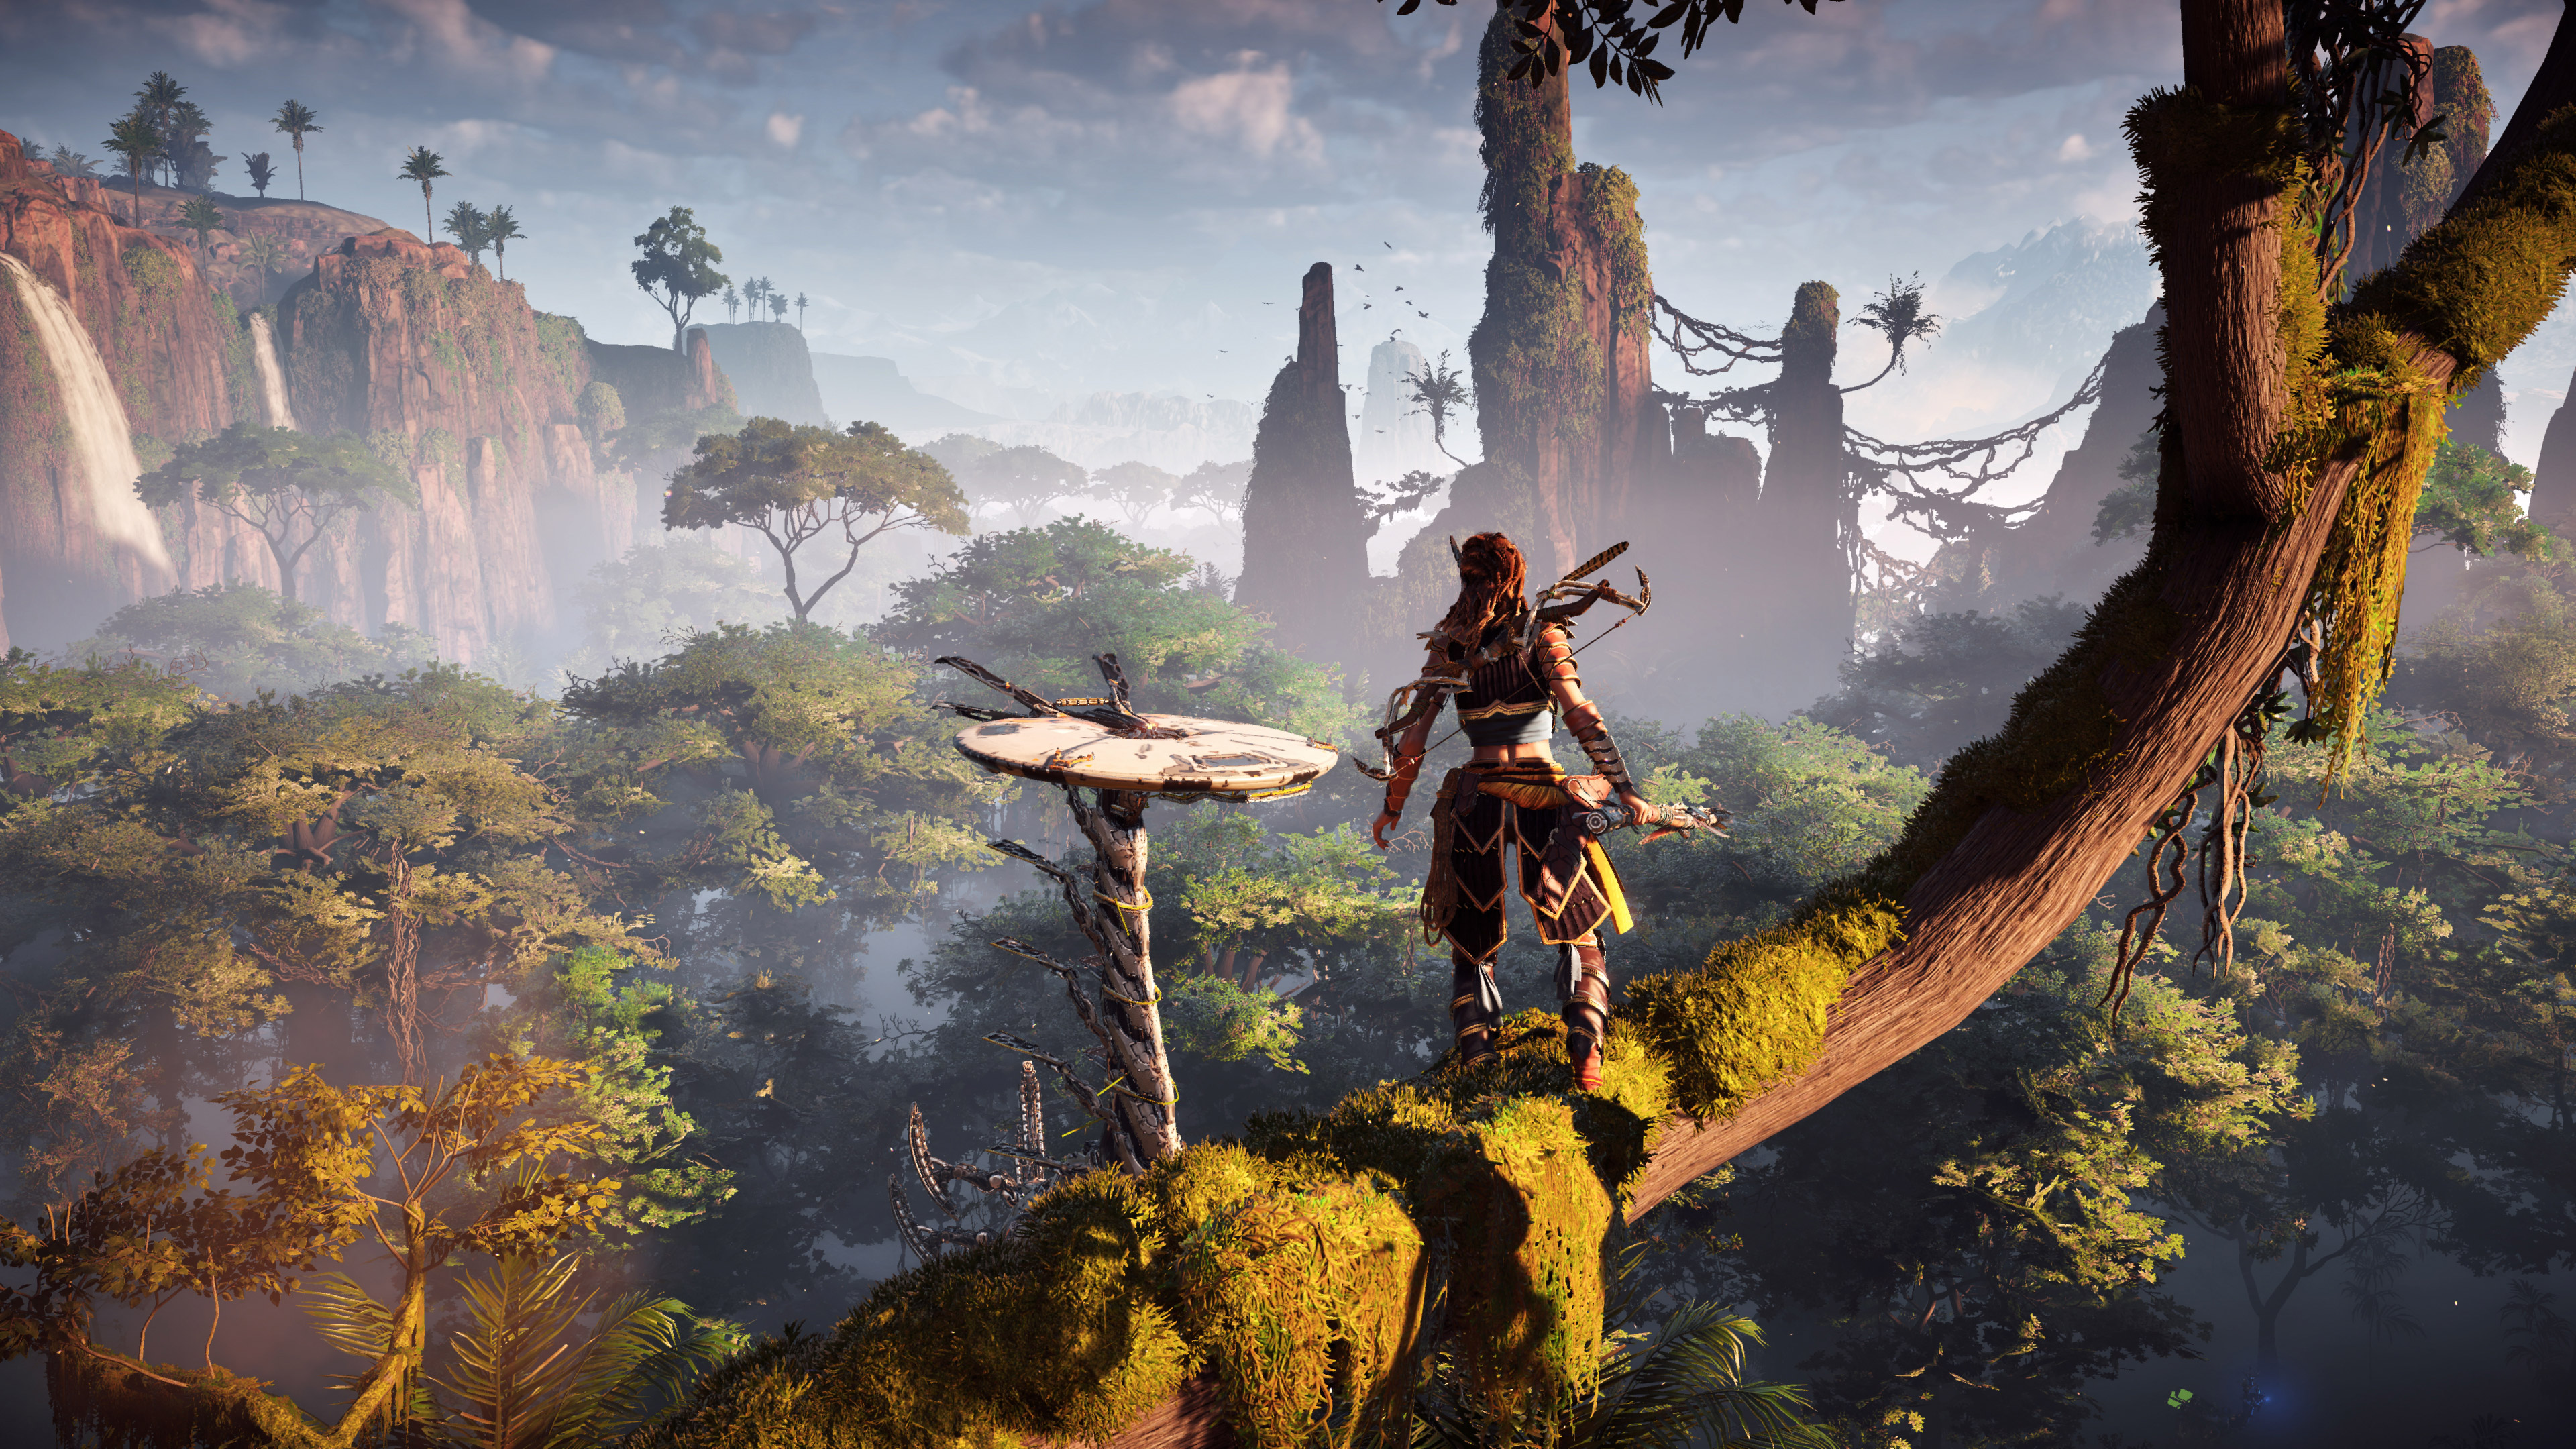 1440x900 Horizon Zero Dawn 4k Game 1440x900 Resolution HD